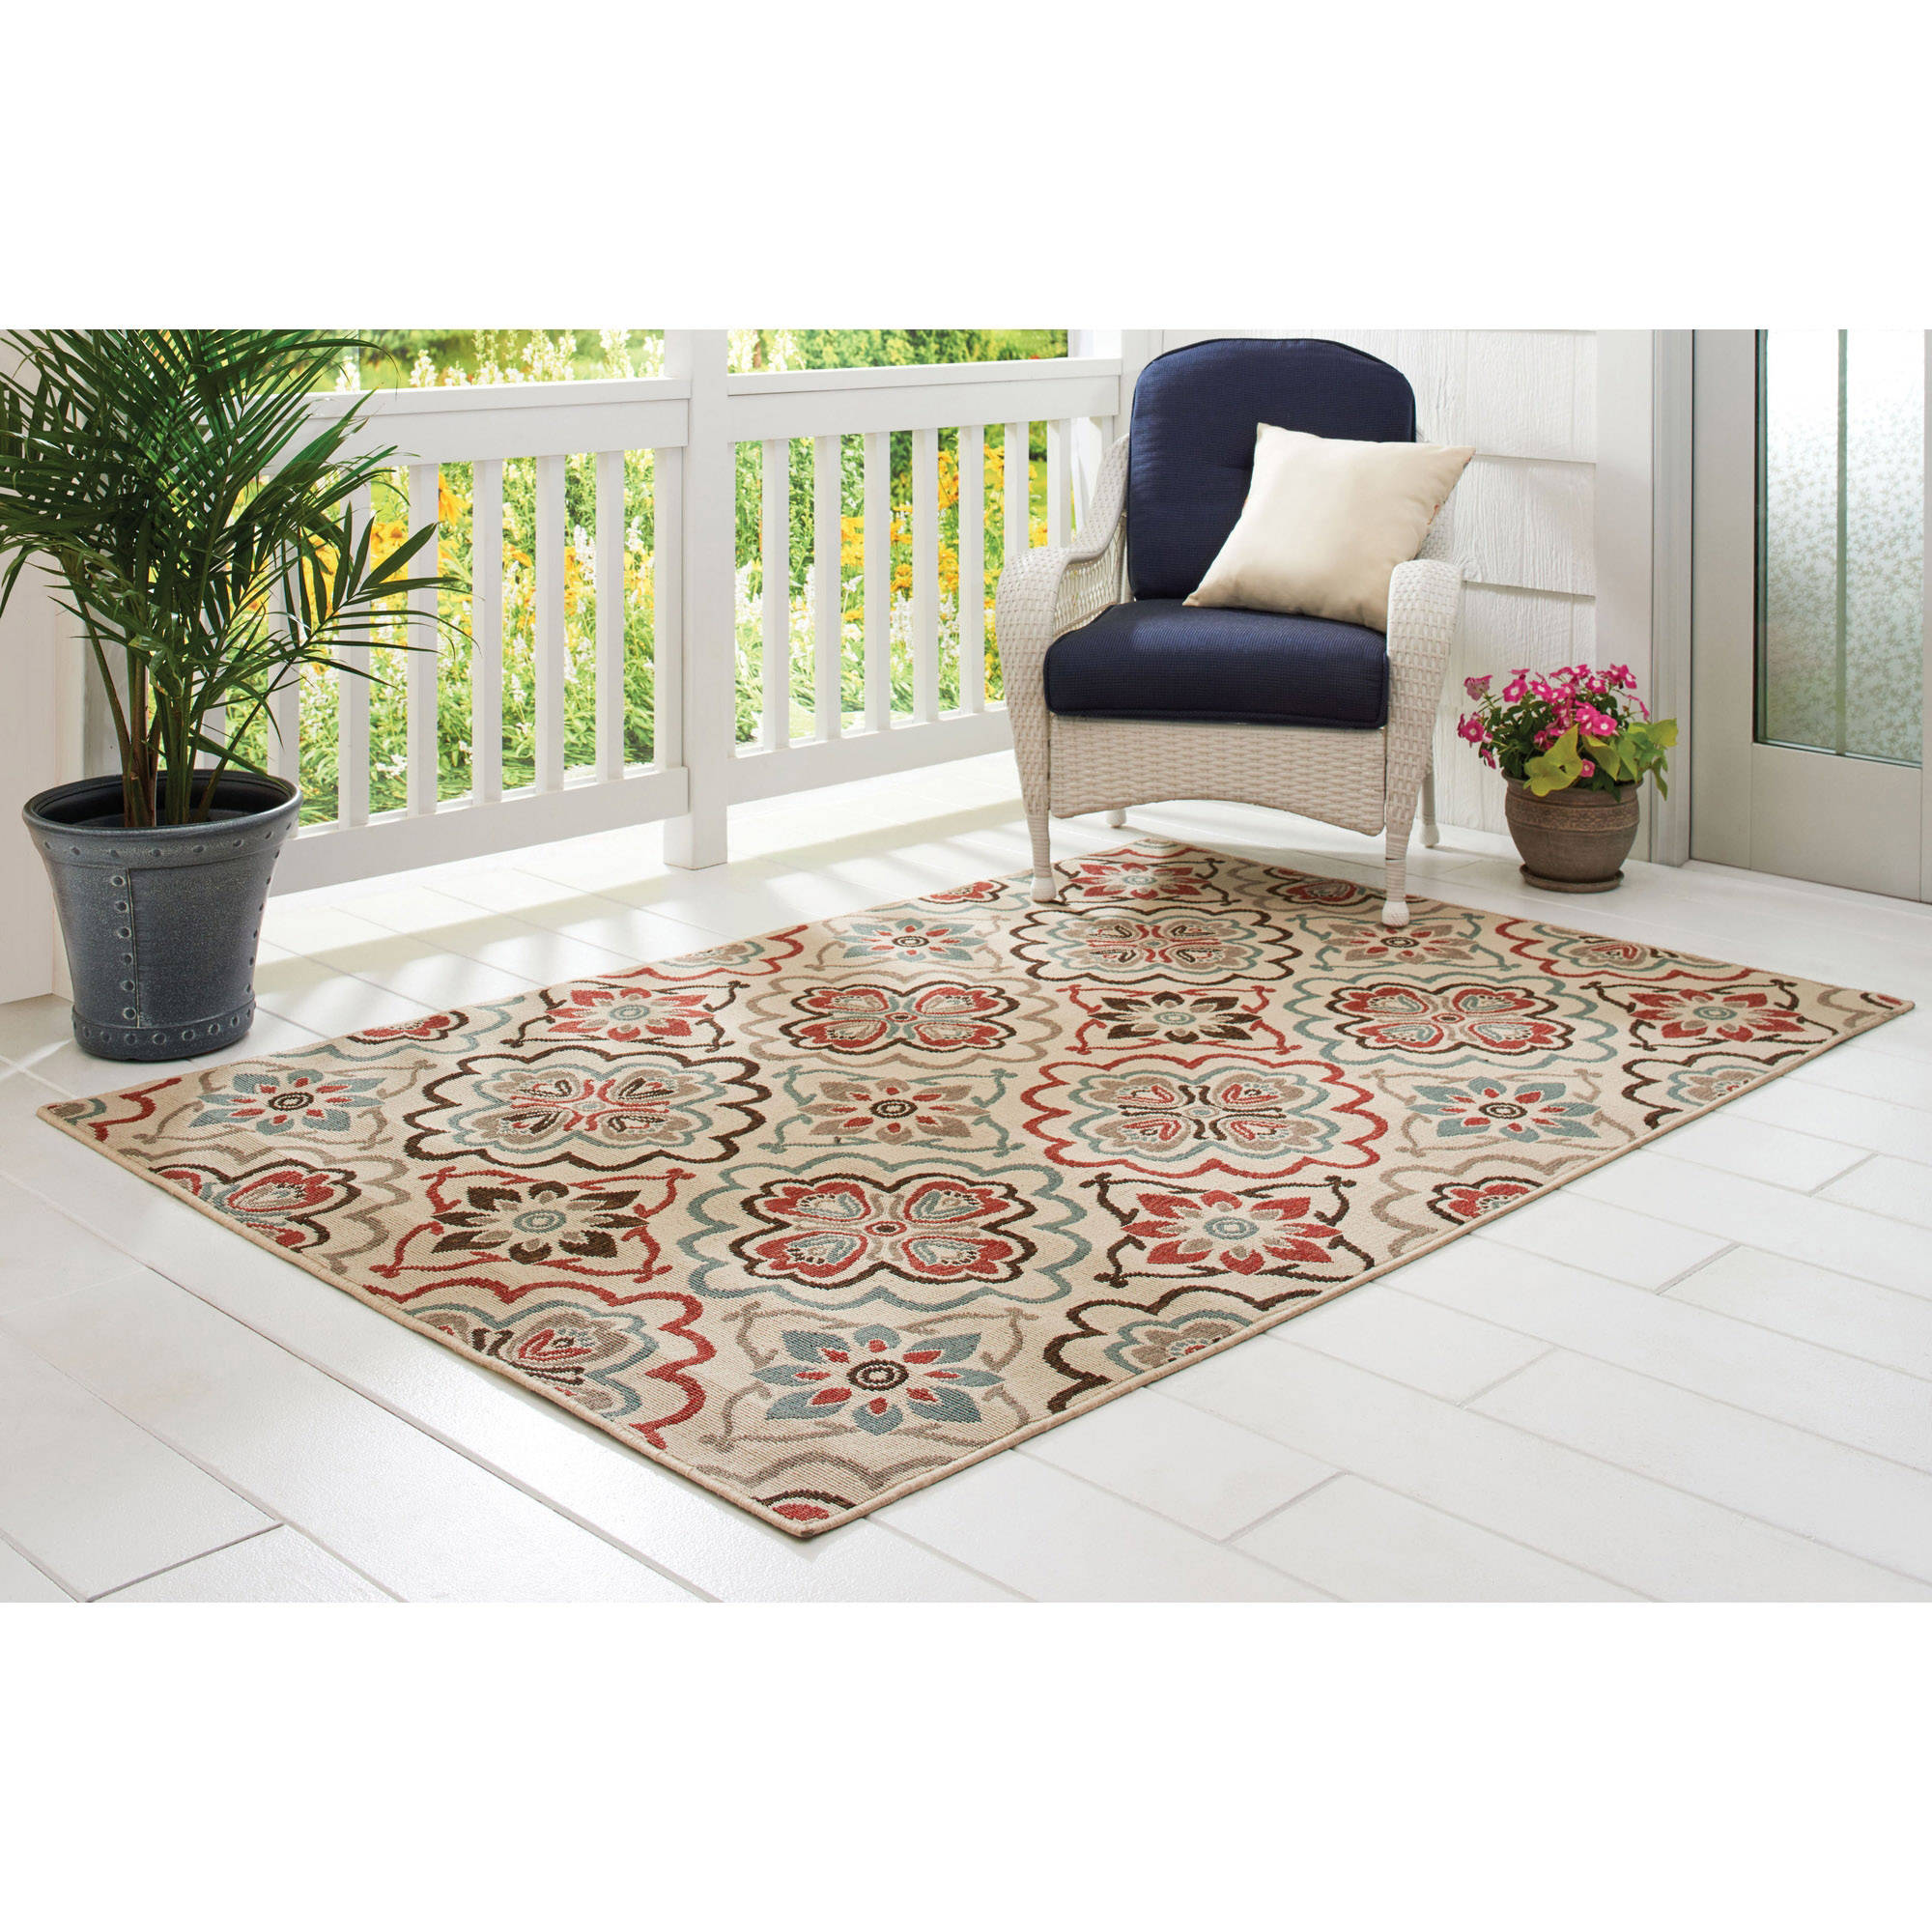 [*] Indoor Outdoor Rugs Walmart | 5 Doubts About Indoor Outdoor Rugs Walmart You Should Clarify